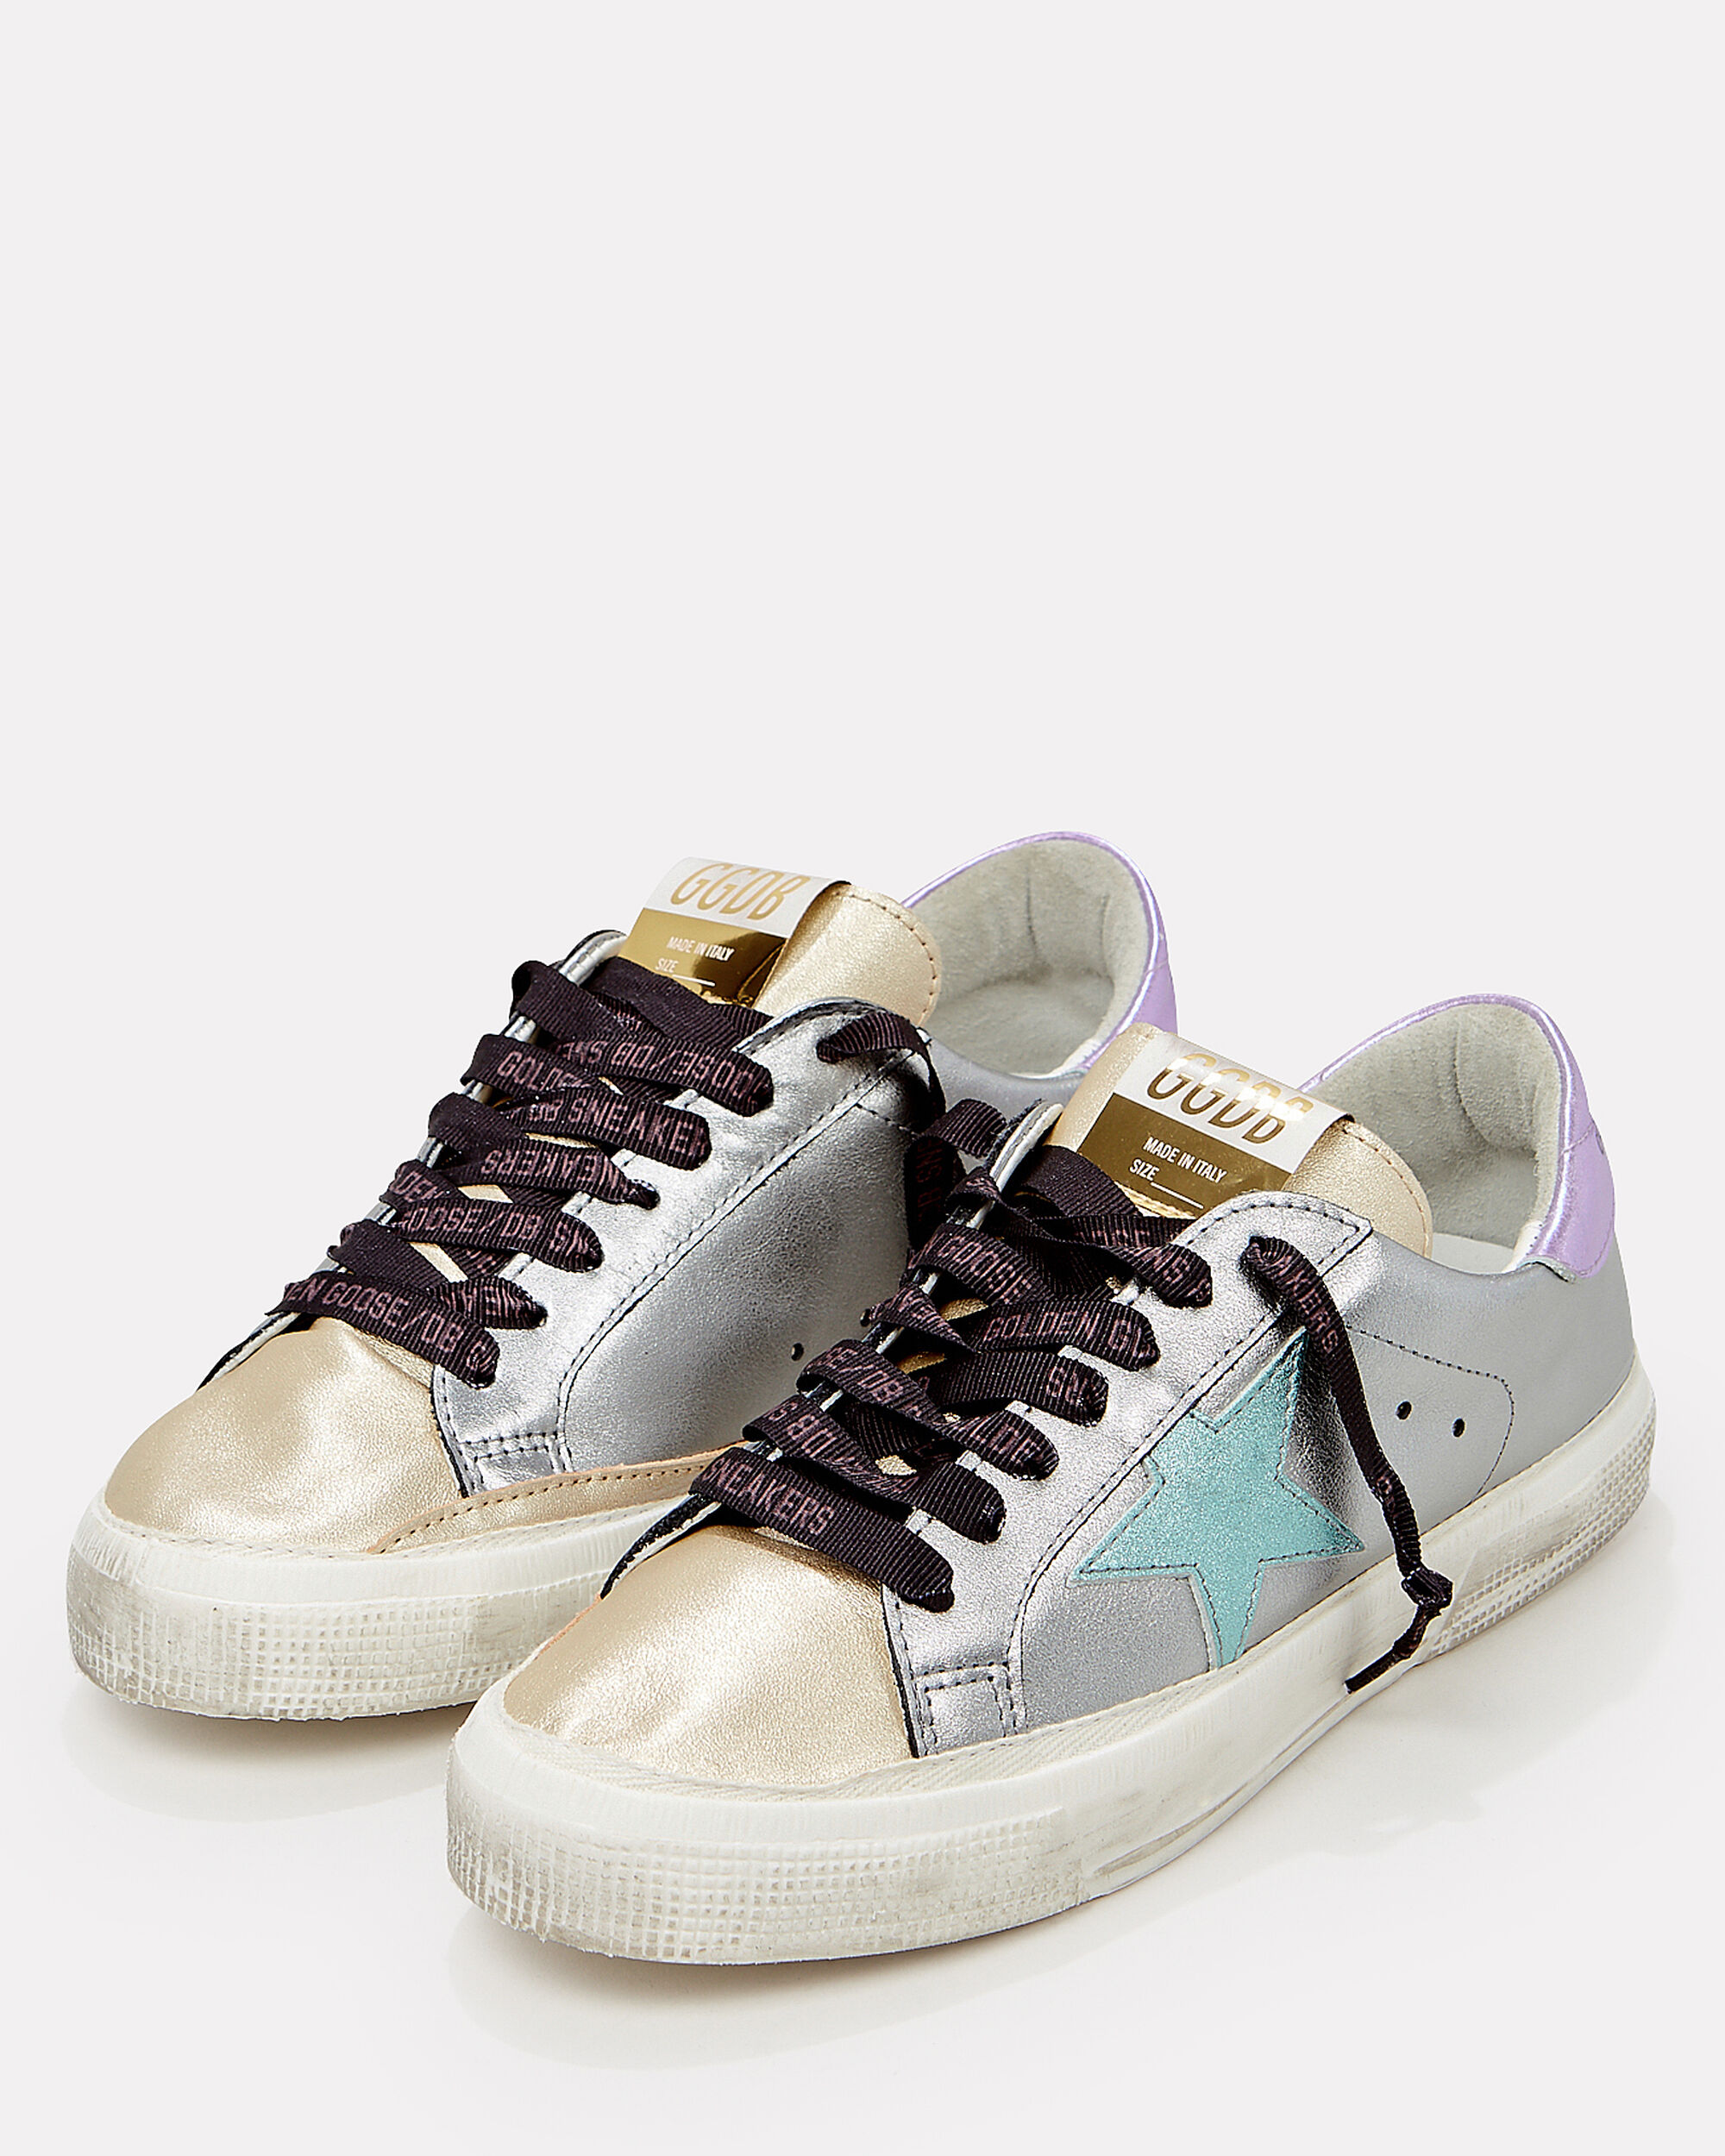 May Colorblock Low-Top Sneakers, GOLD/SILVER/PURPLE, hi-res